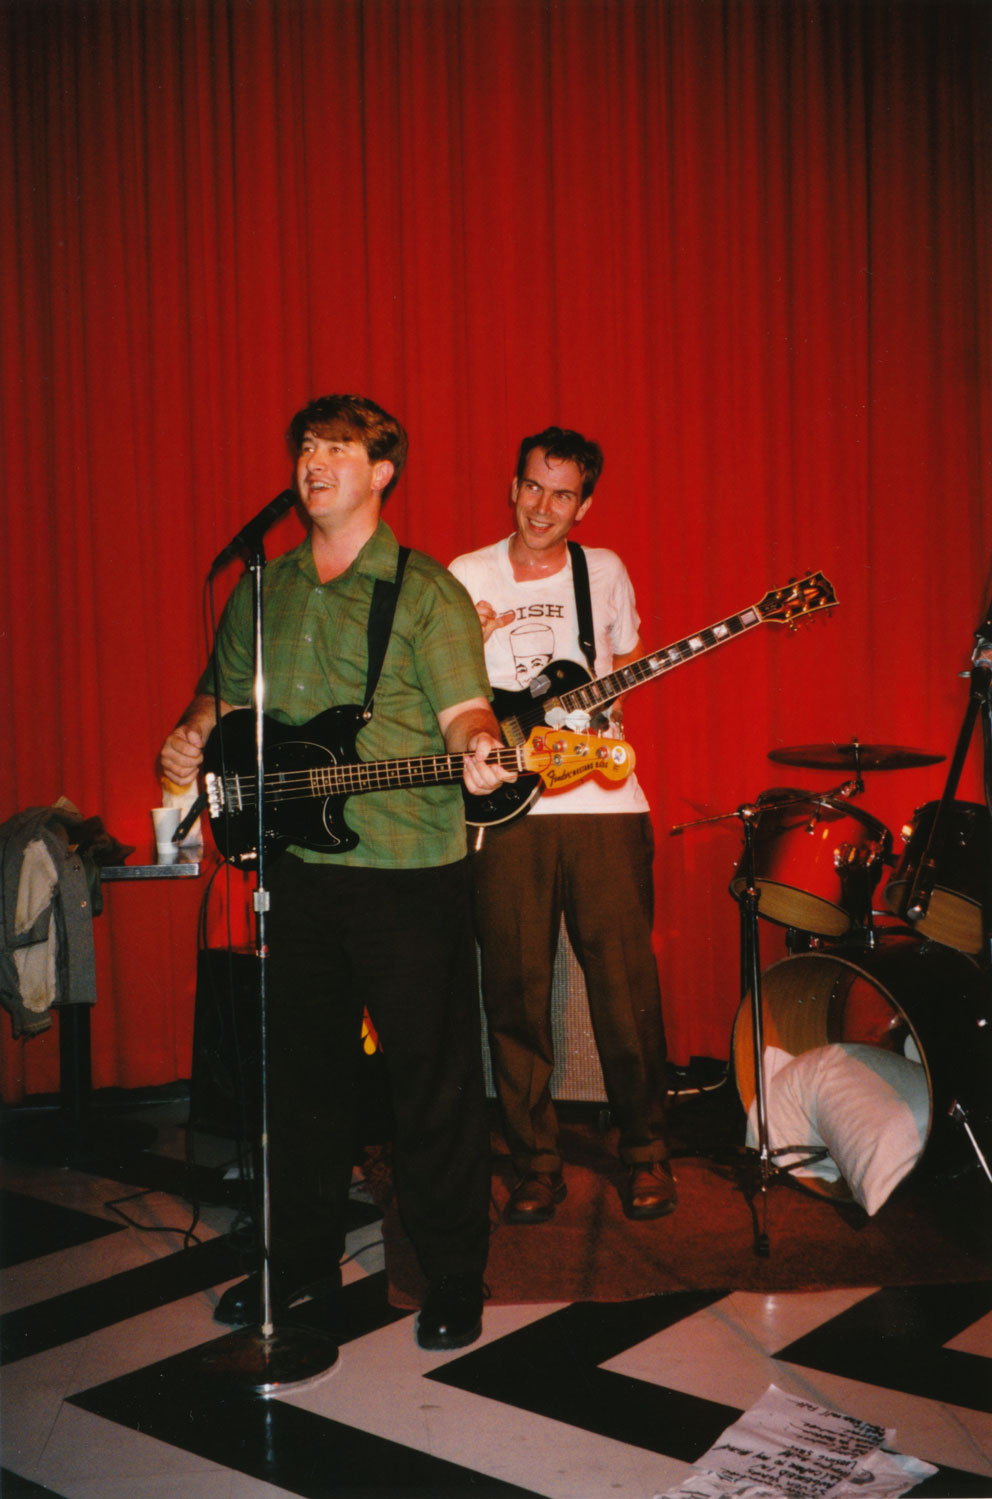 Openeing for Cub, October 12th, 199???, at Cafe This in Santa Rosa